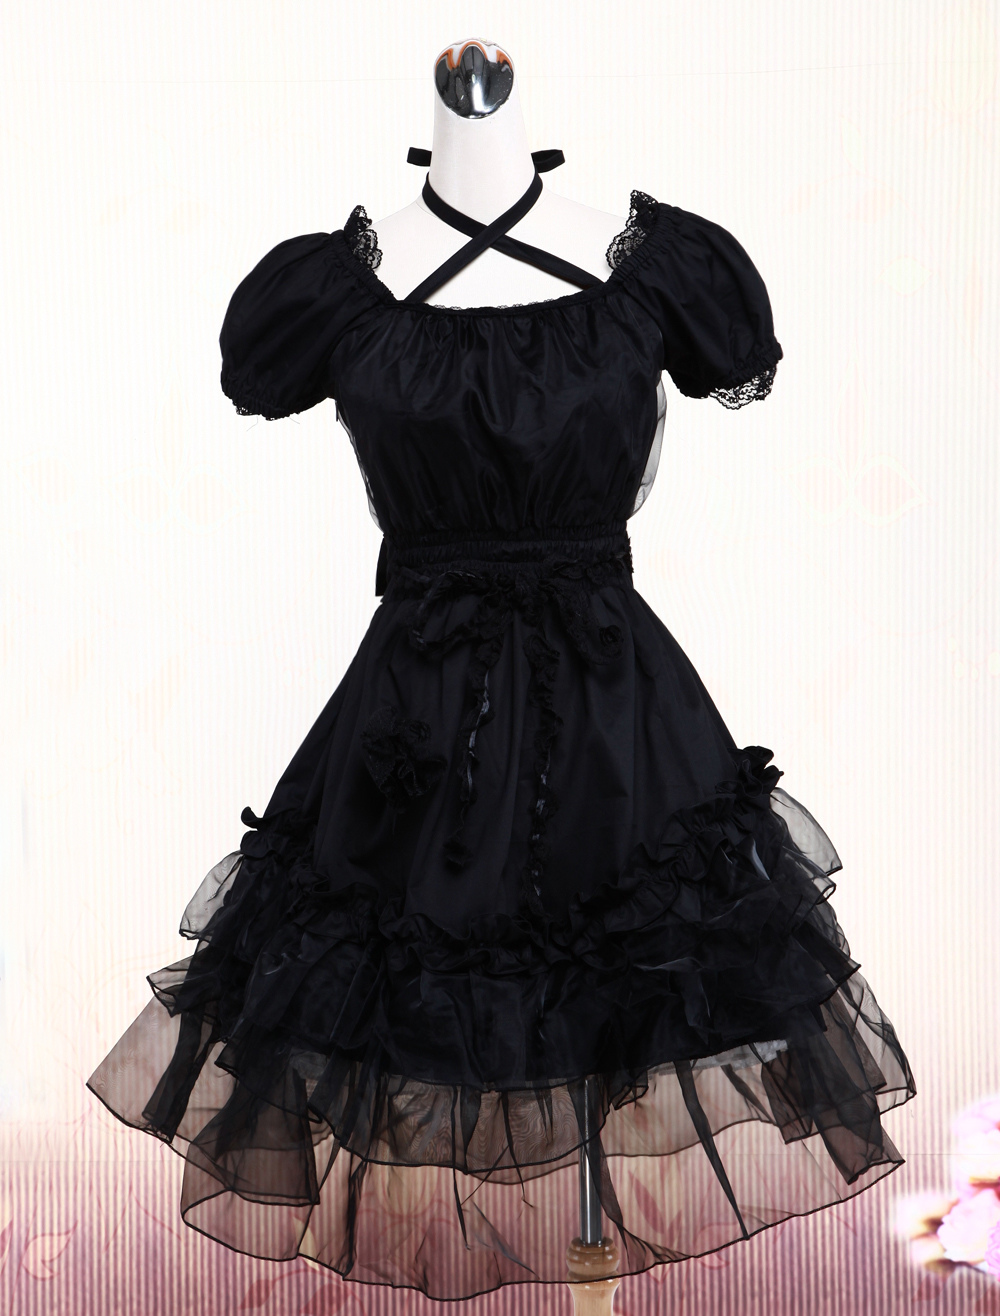 Buy Pure Black Lolita One-piece Dress Short Sleeves Lace Trim Neck Straps for $72.89 in Milanoo store